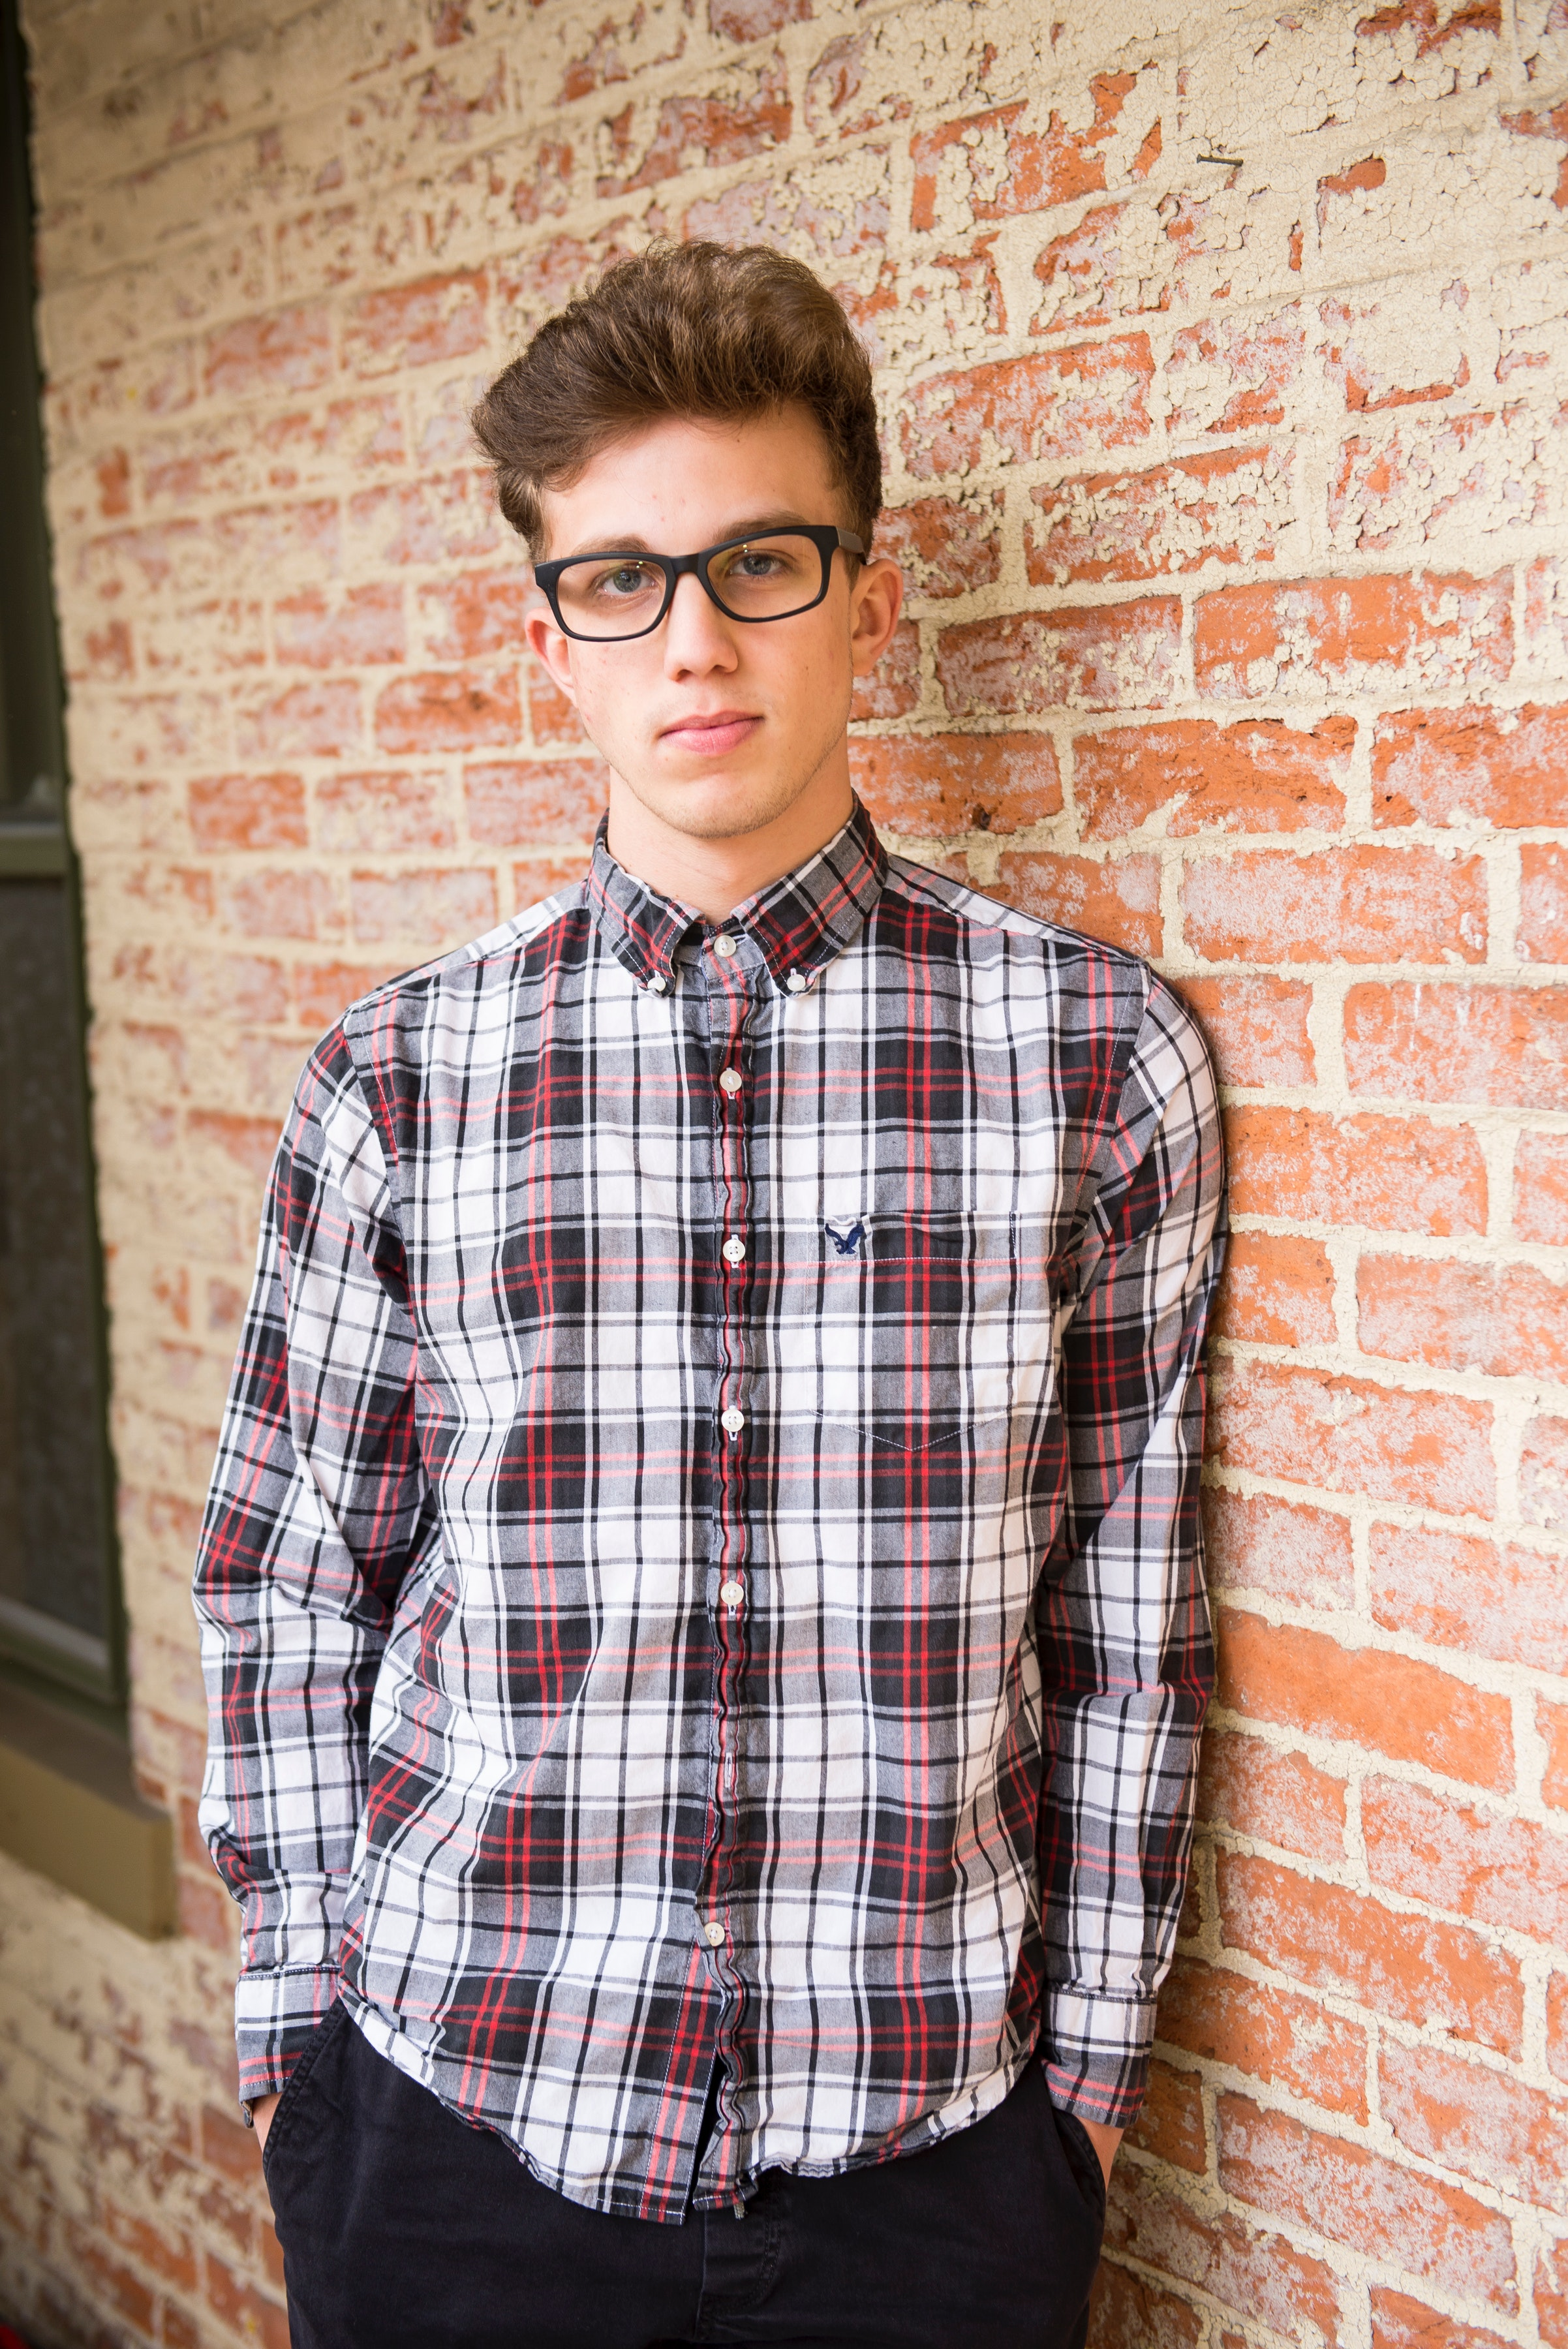 Man In Red And White Plaid Dress Shirt And Black Bottoms With Black Frame Eyeglasses, Brick wall, Casual, Fashion, Fashionable, HQ Photo